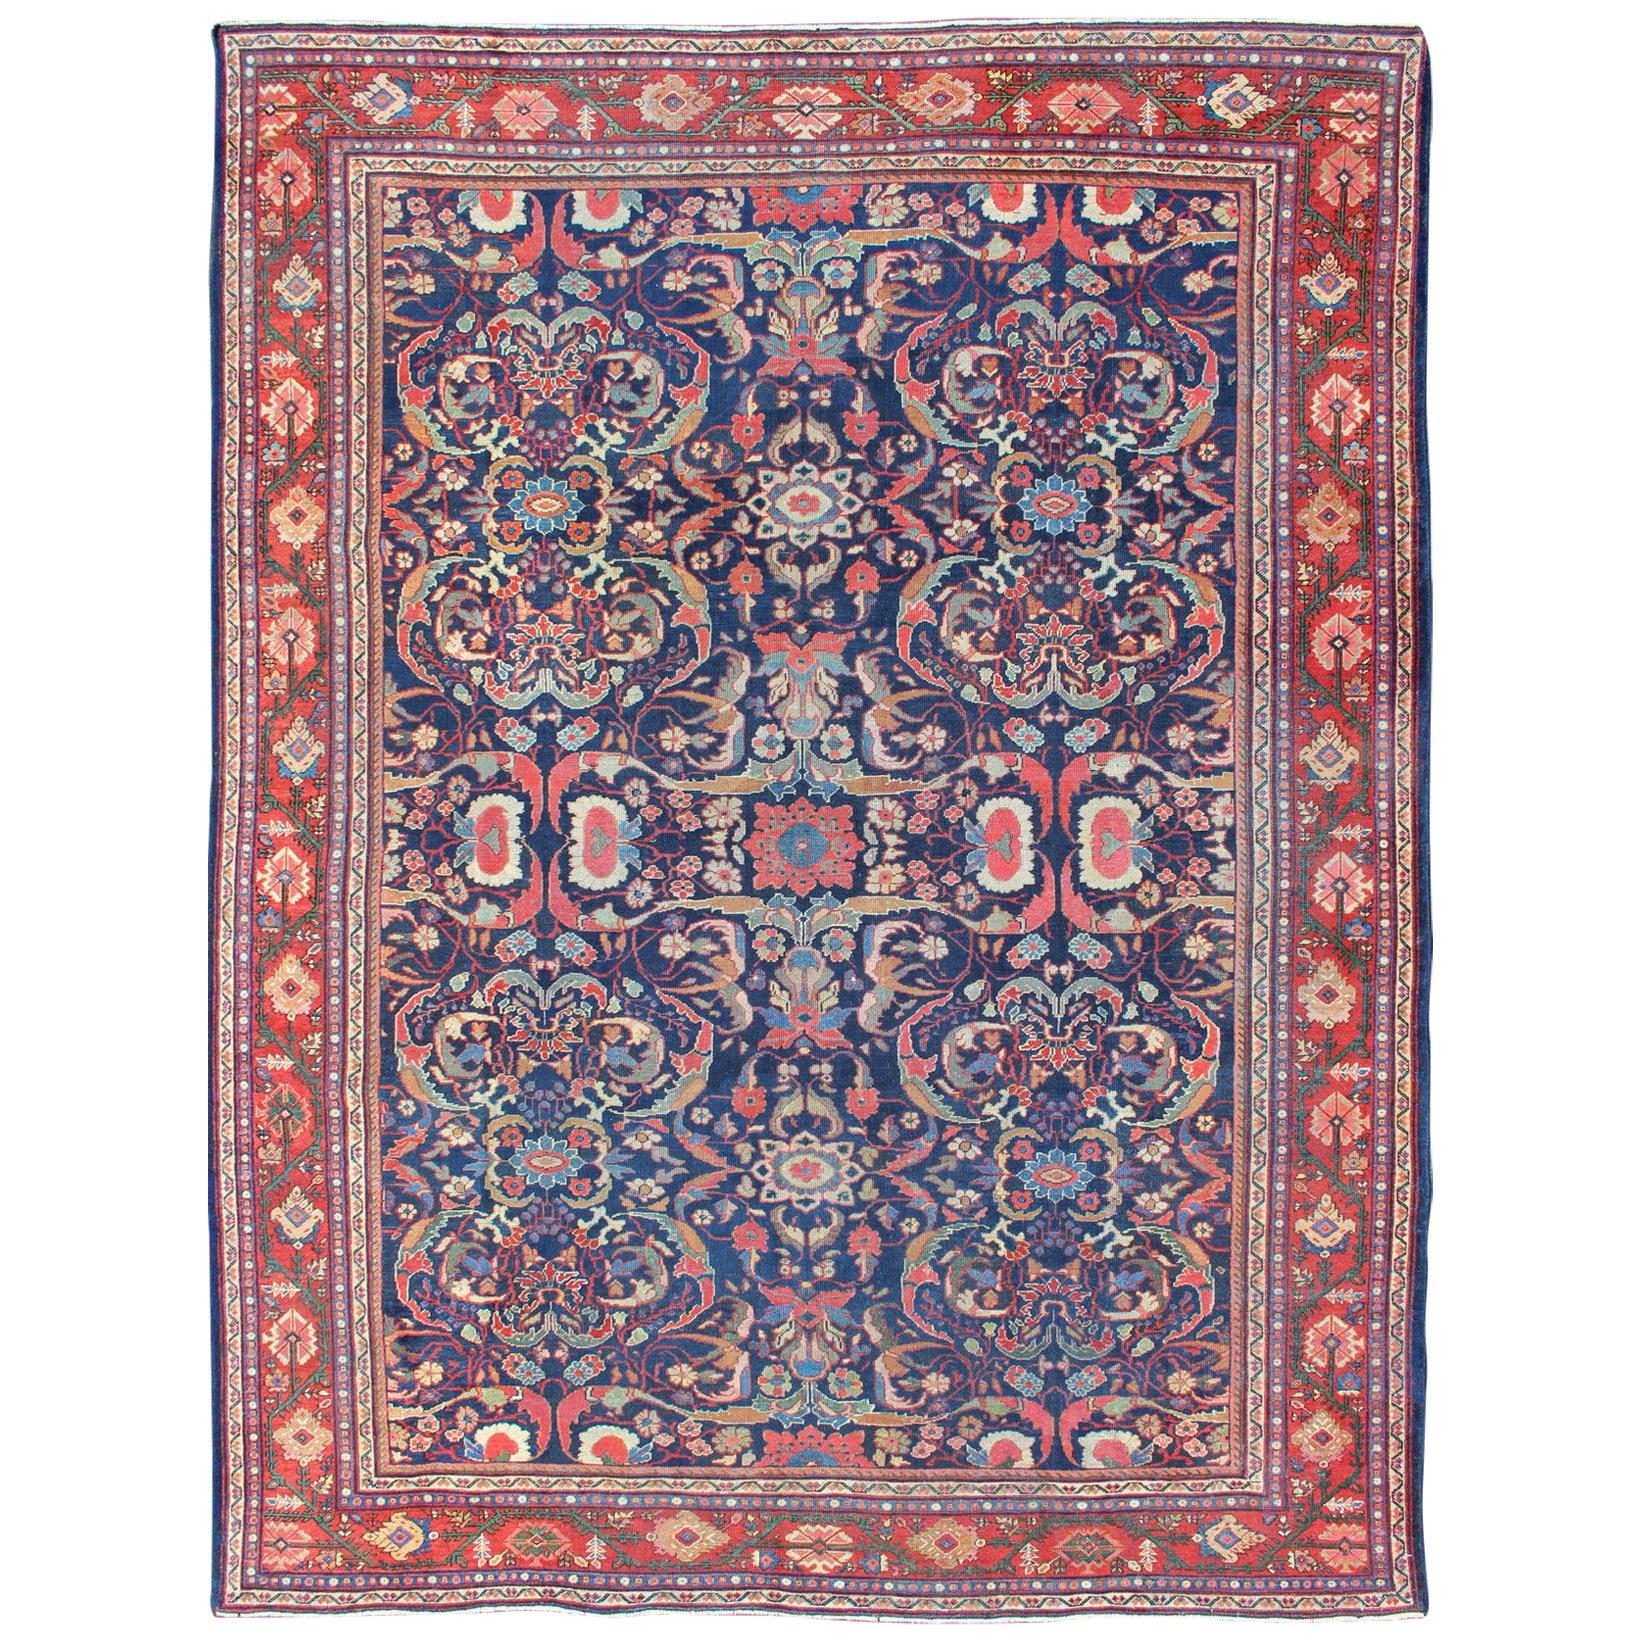 Antique Persian Sultanabad-Mahal Rug with Navy Blue Field and Red Border